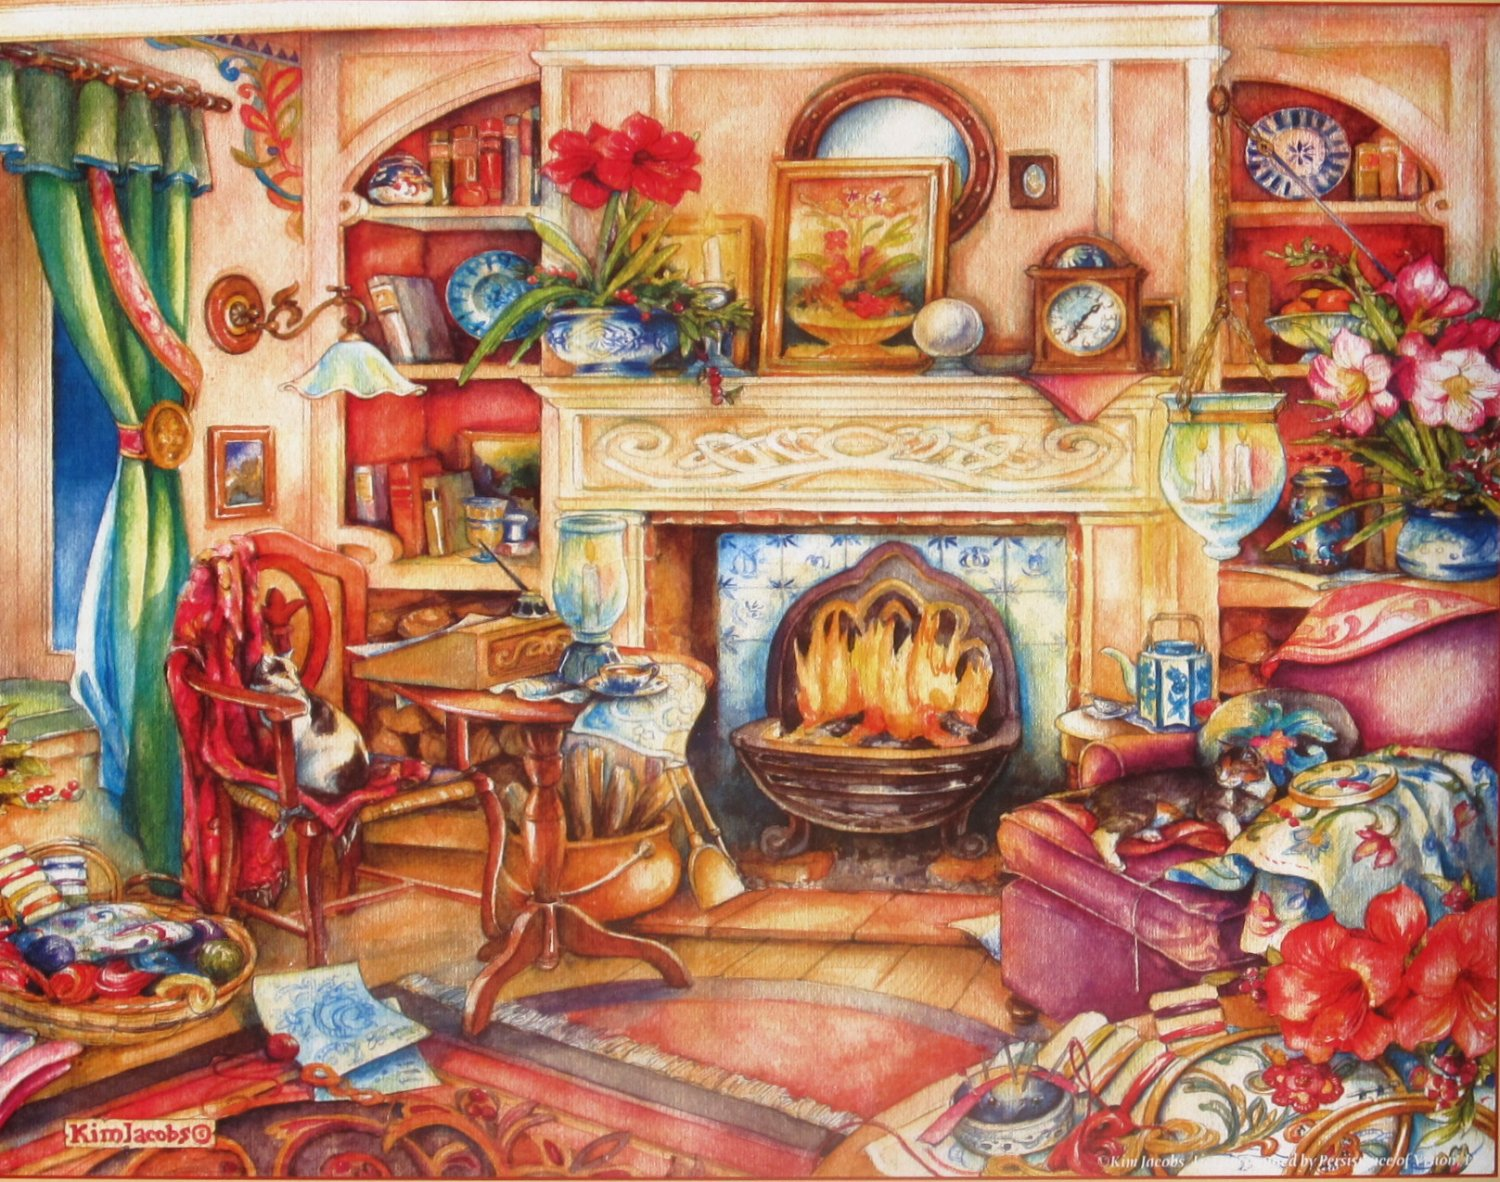 SunsOut Kim Jacobs Fireside Embroidery 1000 pc Jigsaw Puzzle XL Pieces